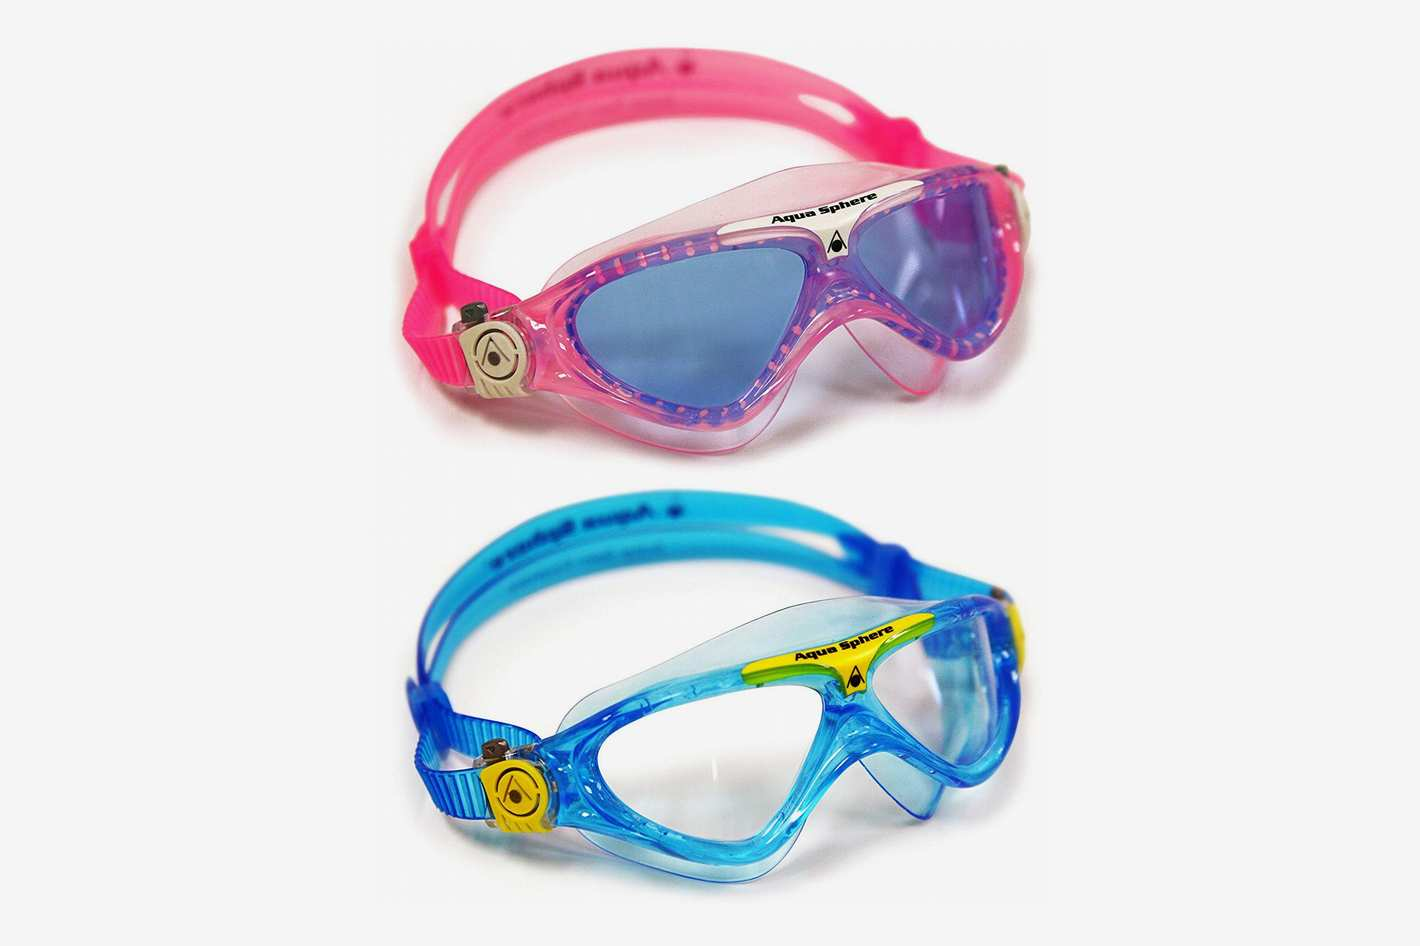 Aqua Sphere Vista Junior Swim Goggles 2-Pack